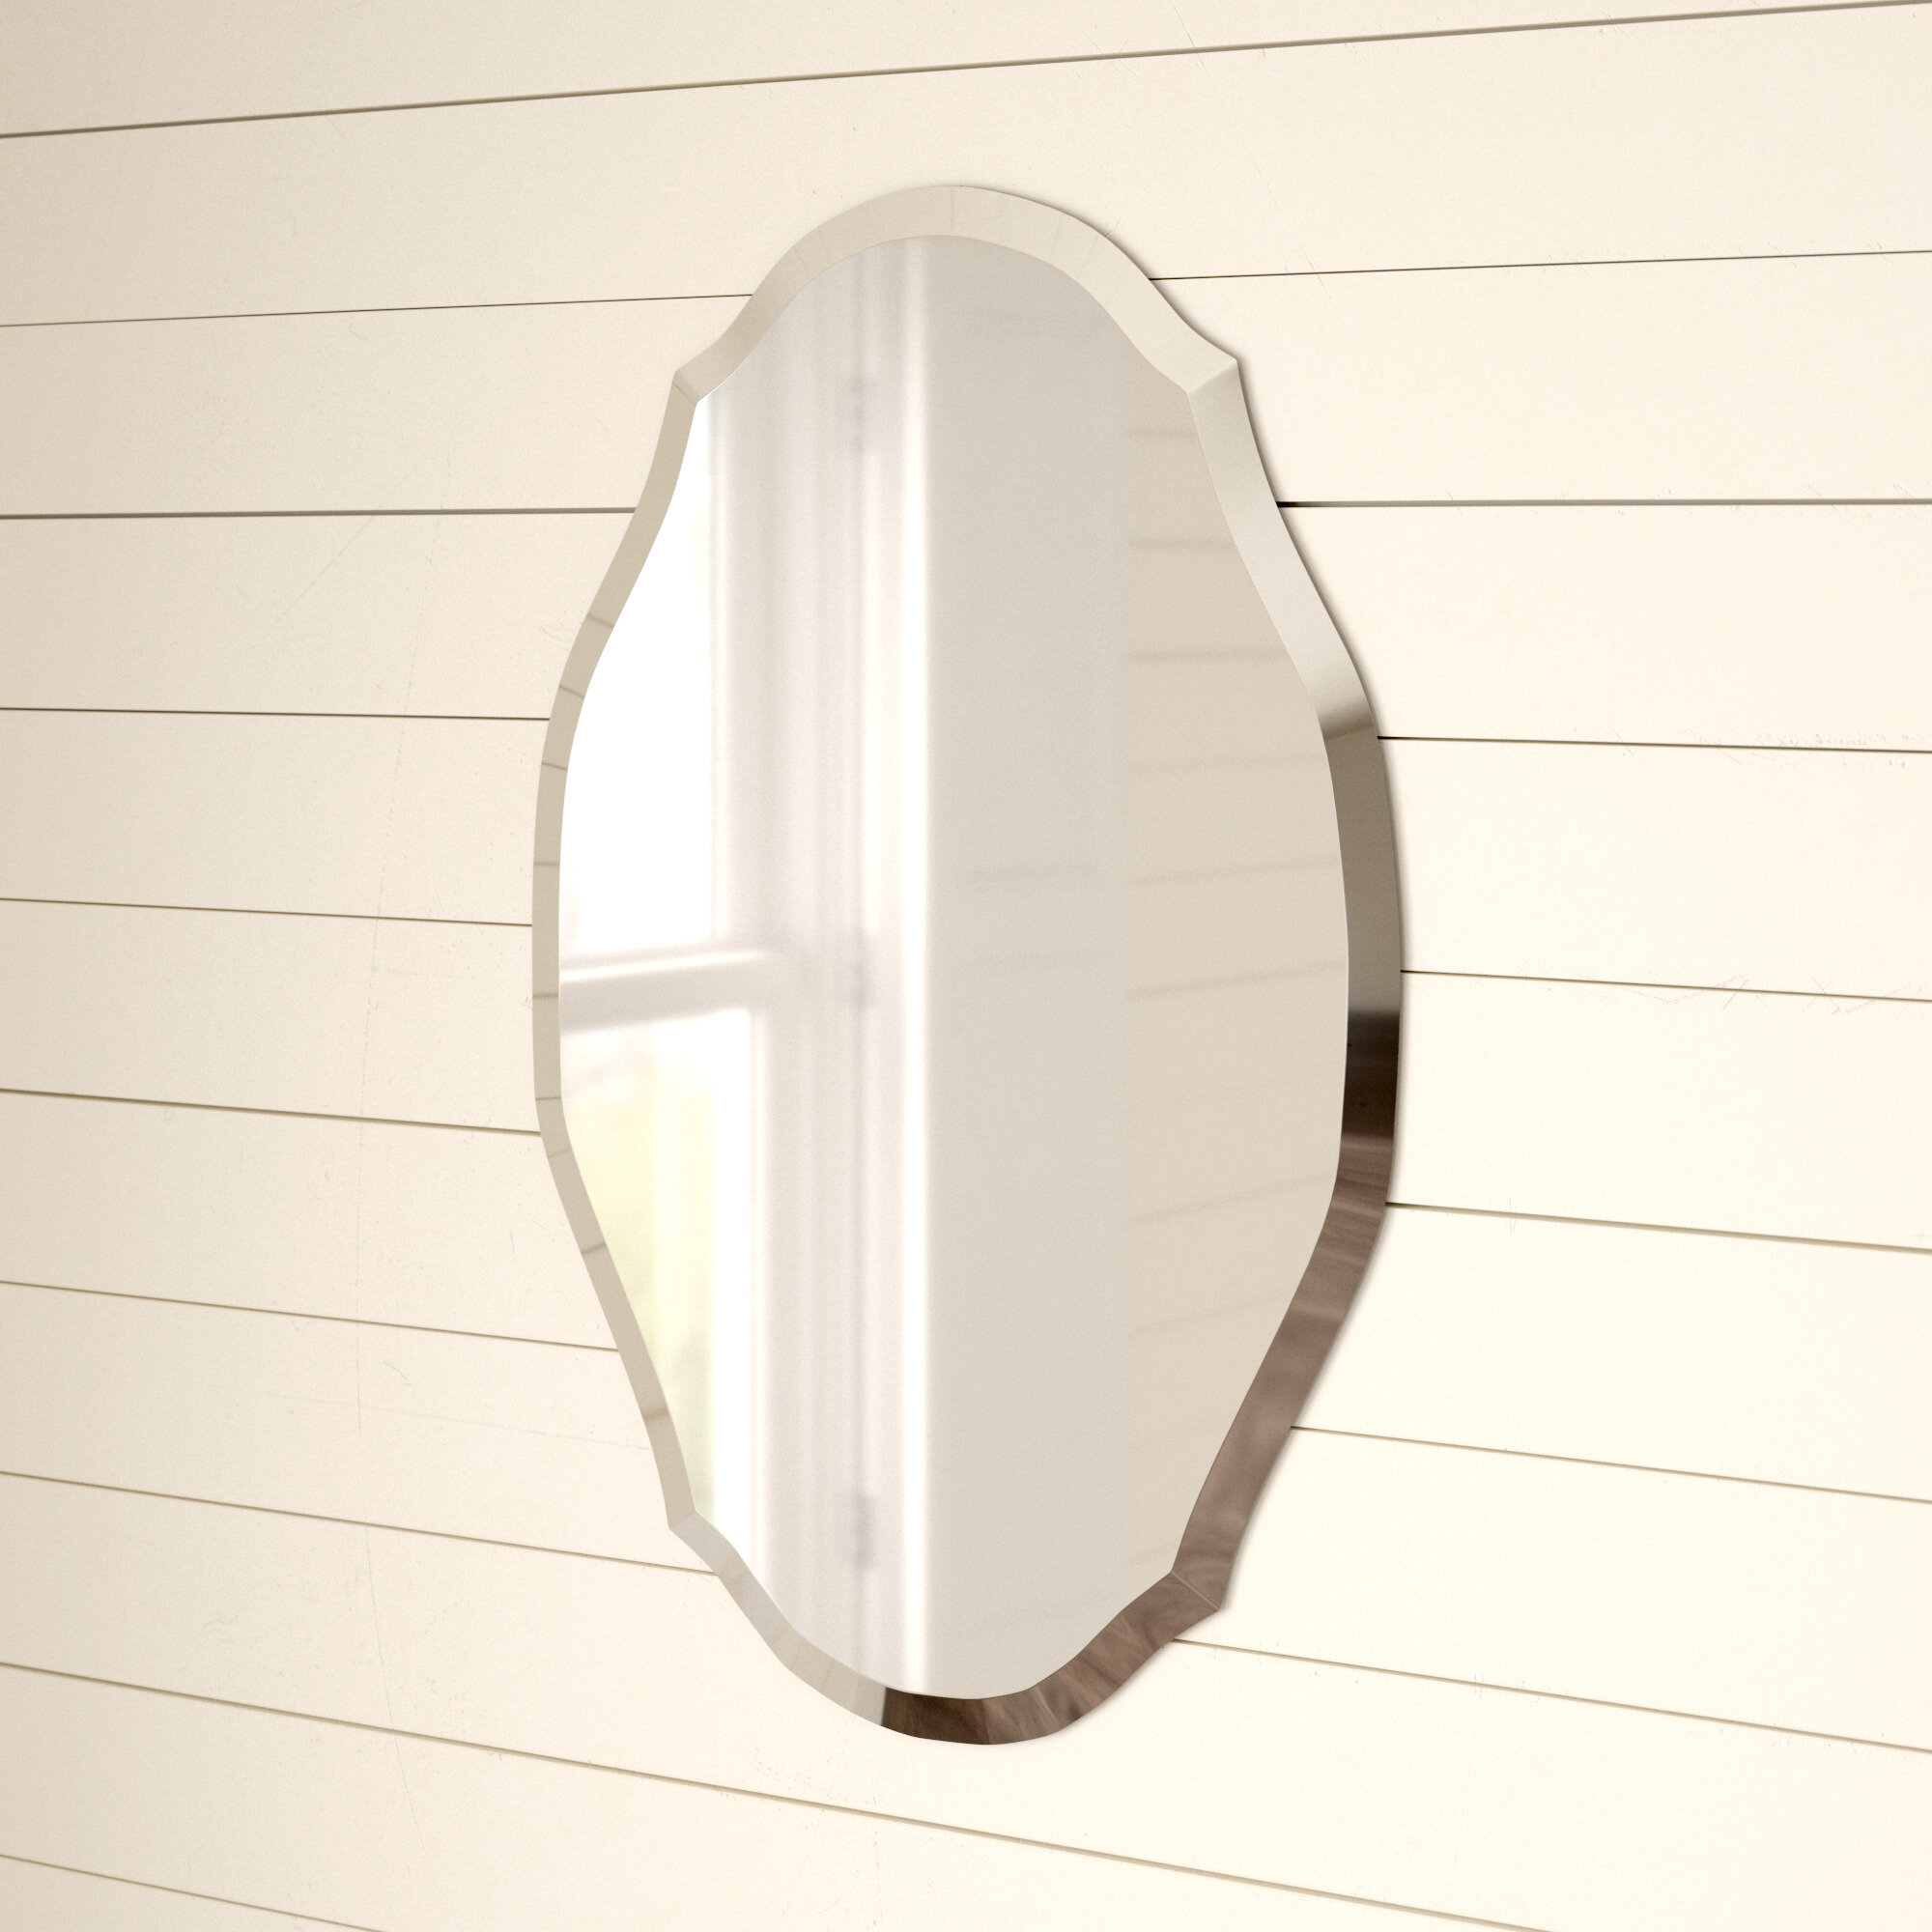 Beveled Oval Mirrors You Ll Love In 2021 Wayfair